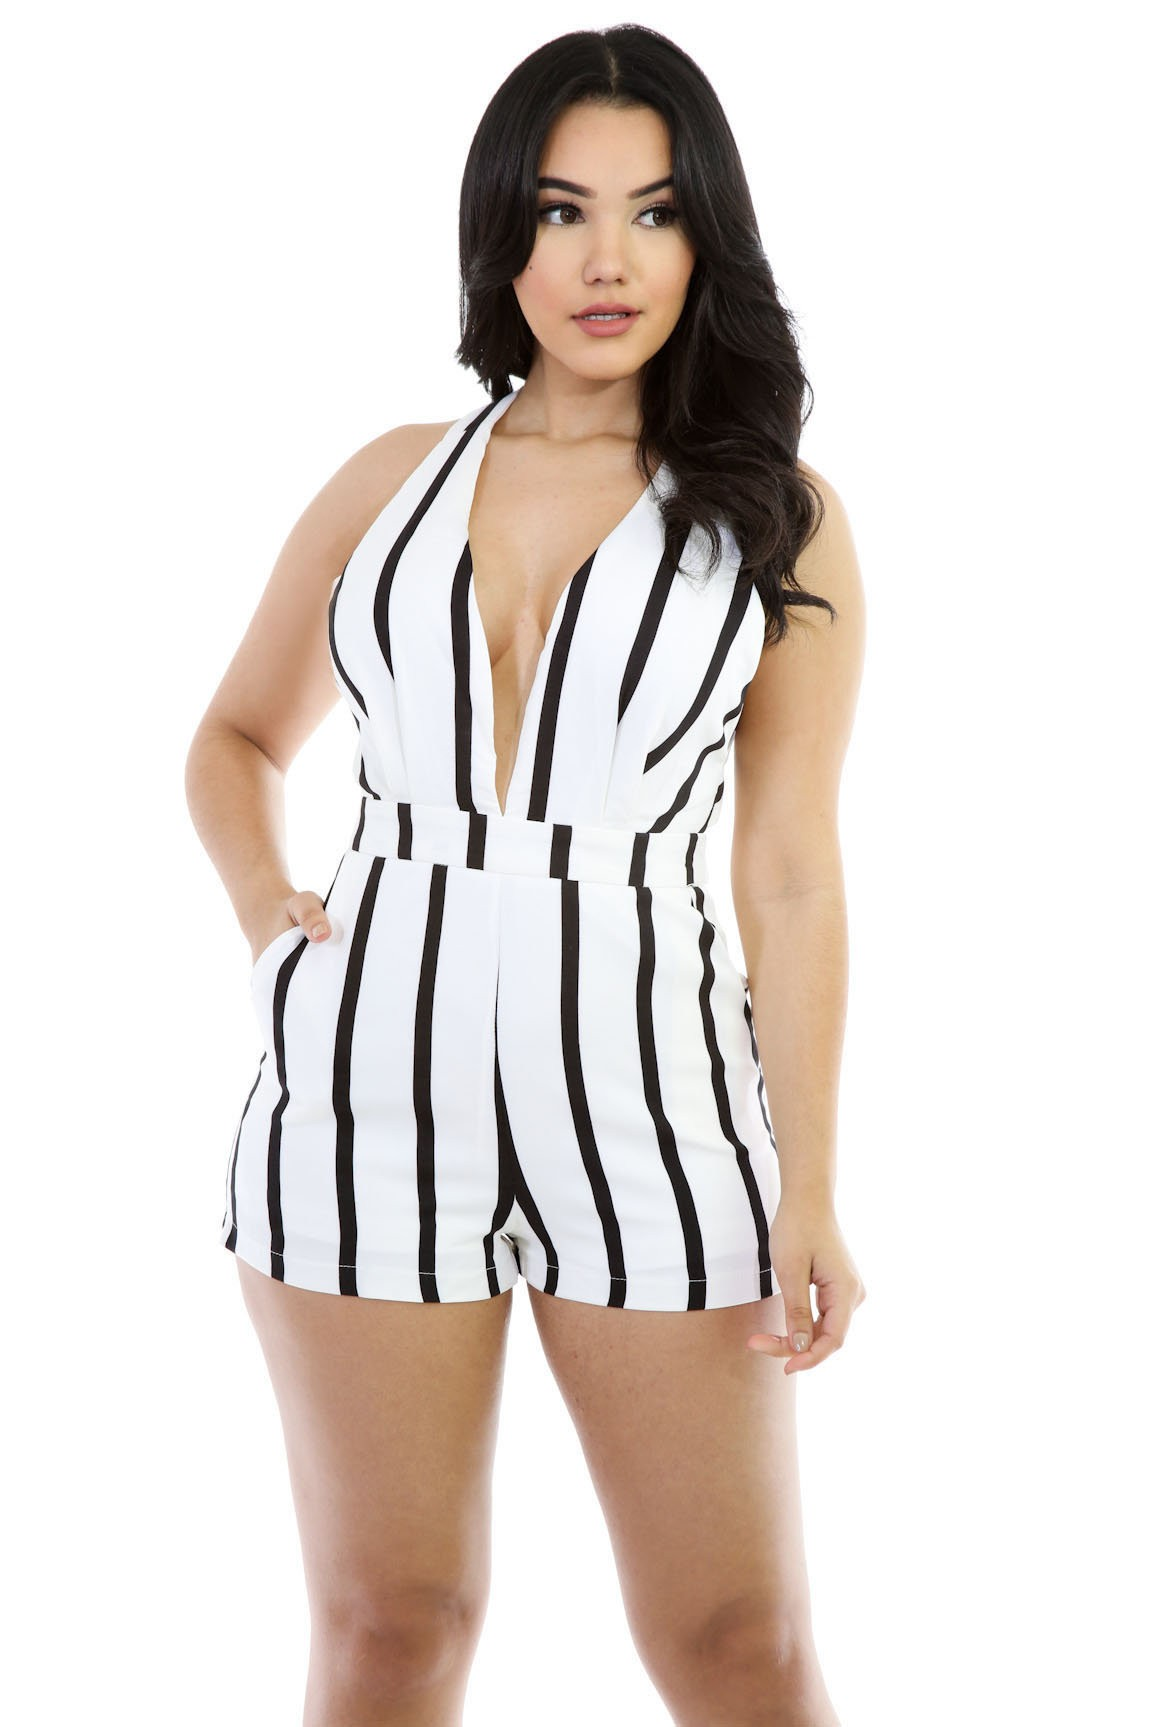 Made with Love Stripped Romper